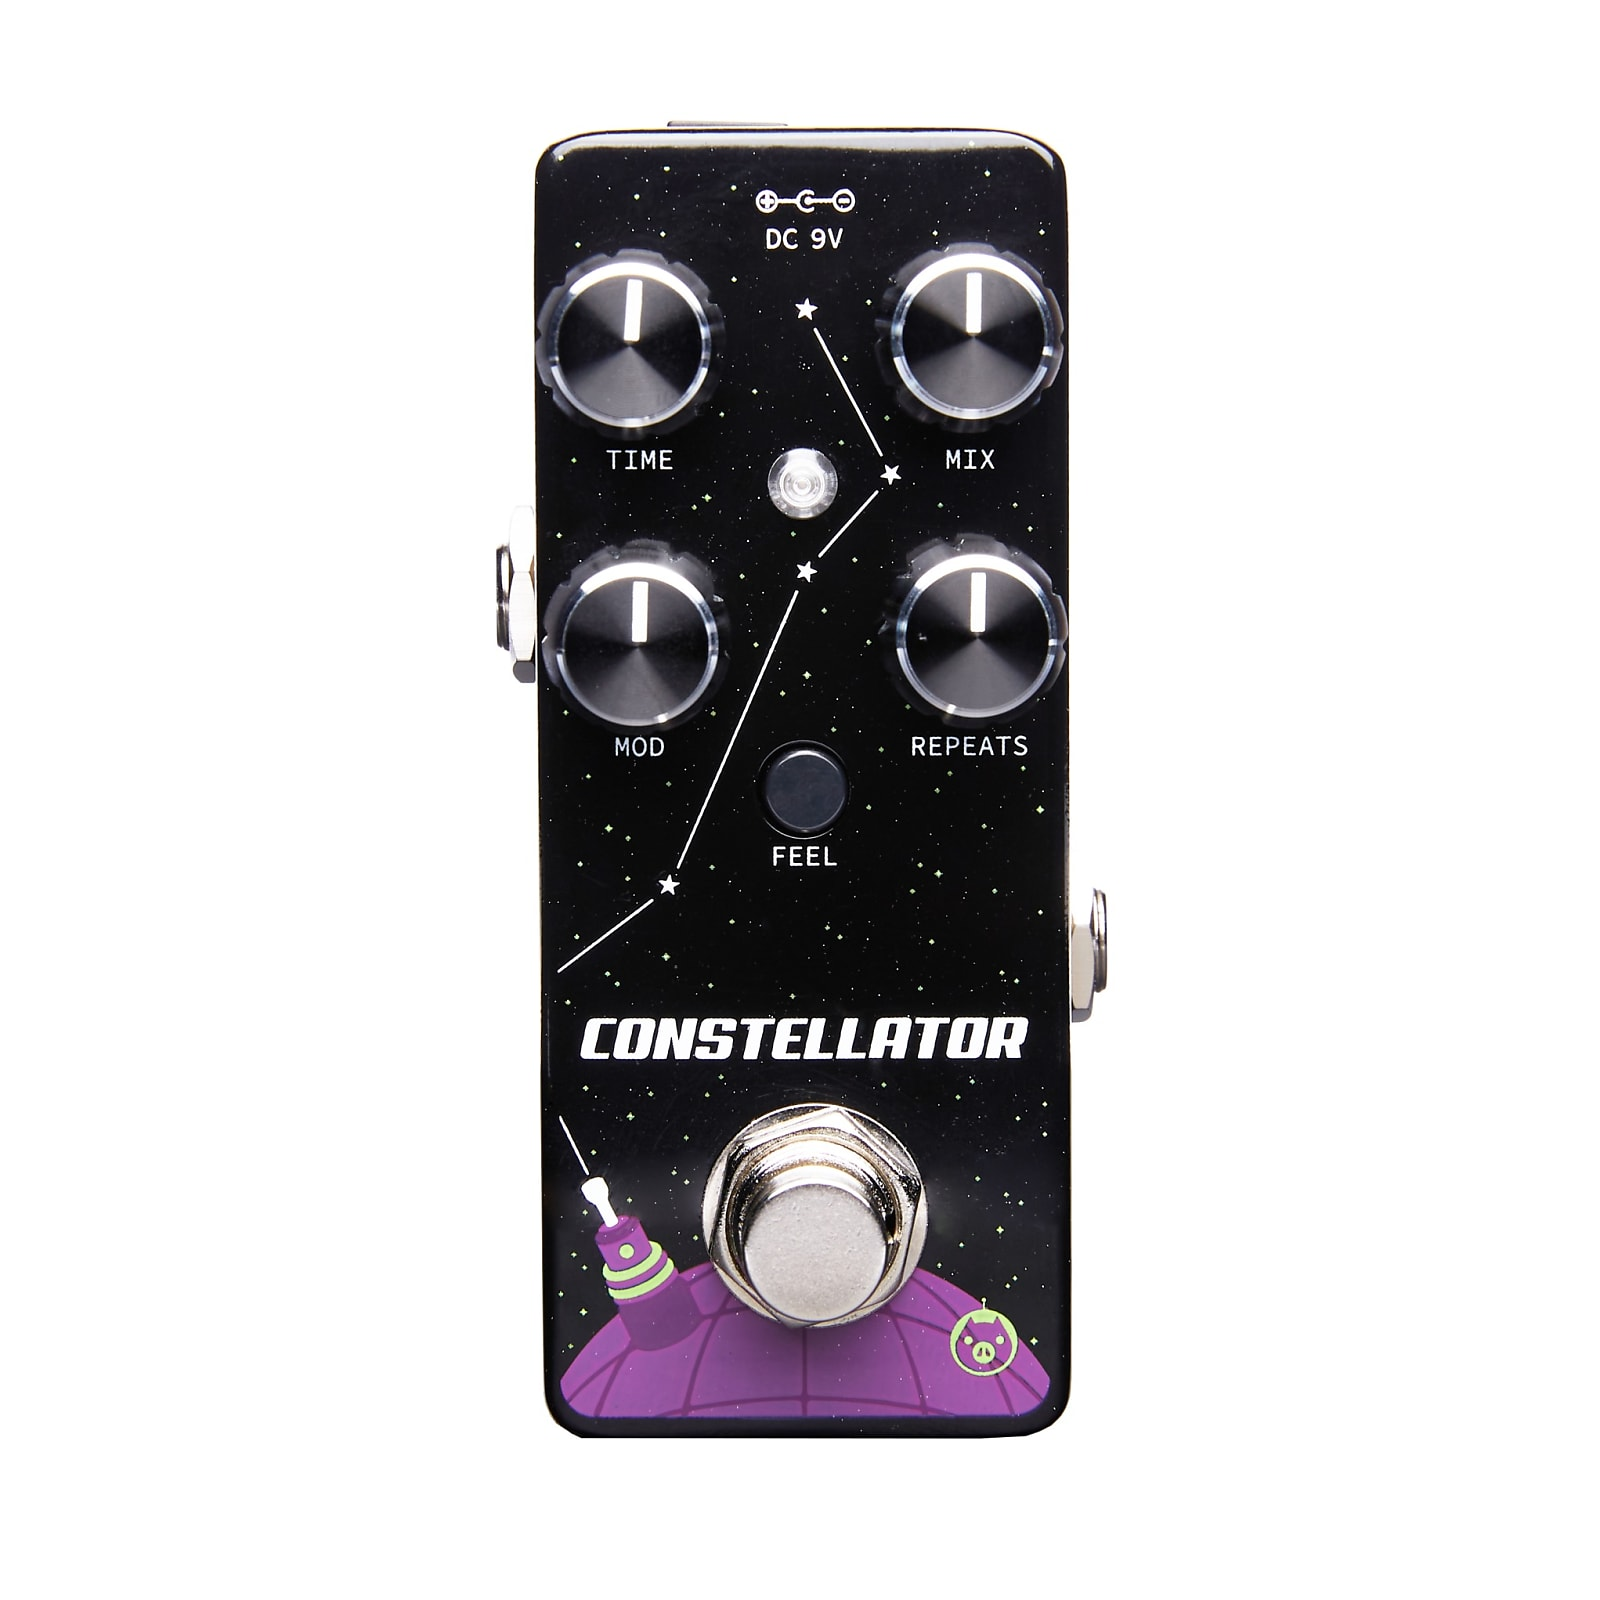 Pigtronix MAD Constellator Modulated Analog Delay Micro Effects Pedal